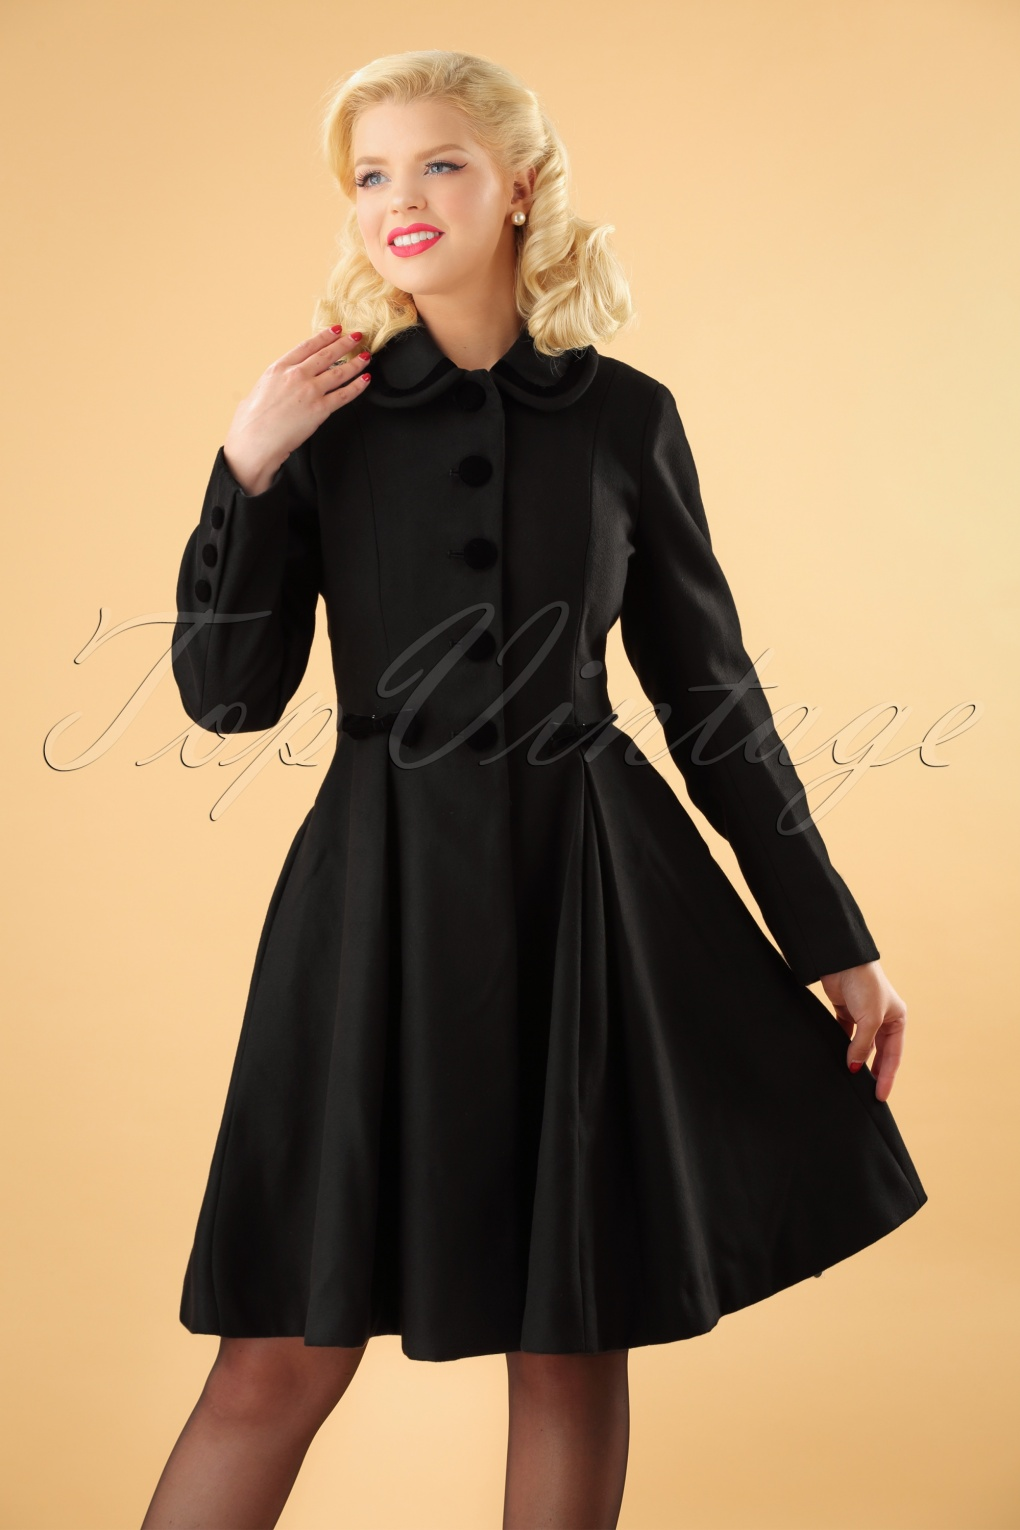 Vintage Coats & Jackets | Retro Coats and Jackets 50s Olivia Bow Coat in Black £114.89 AT vintagedancer.com